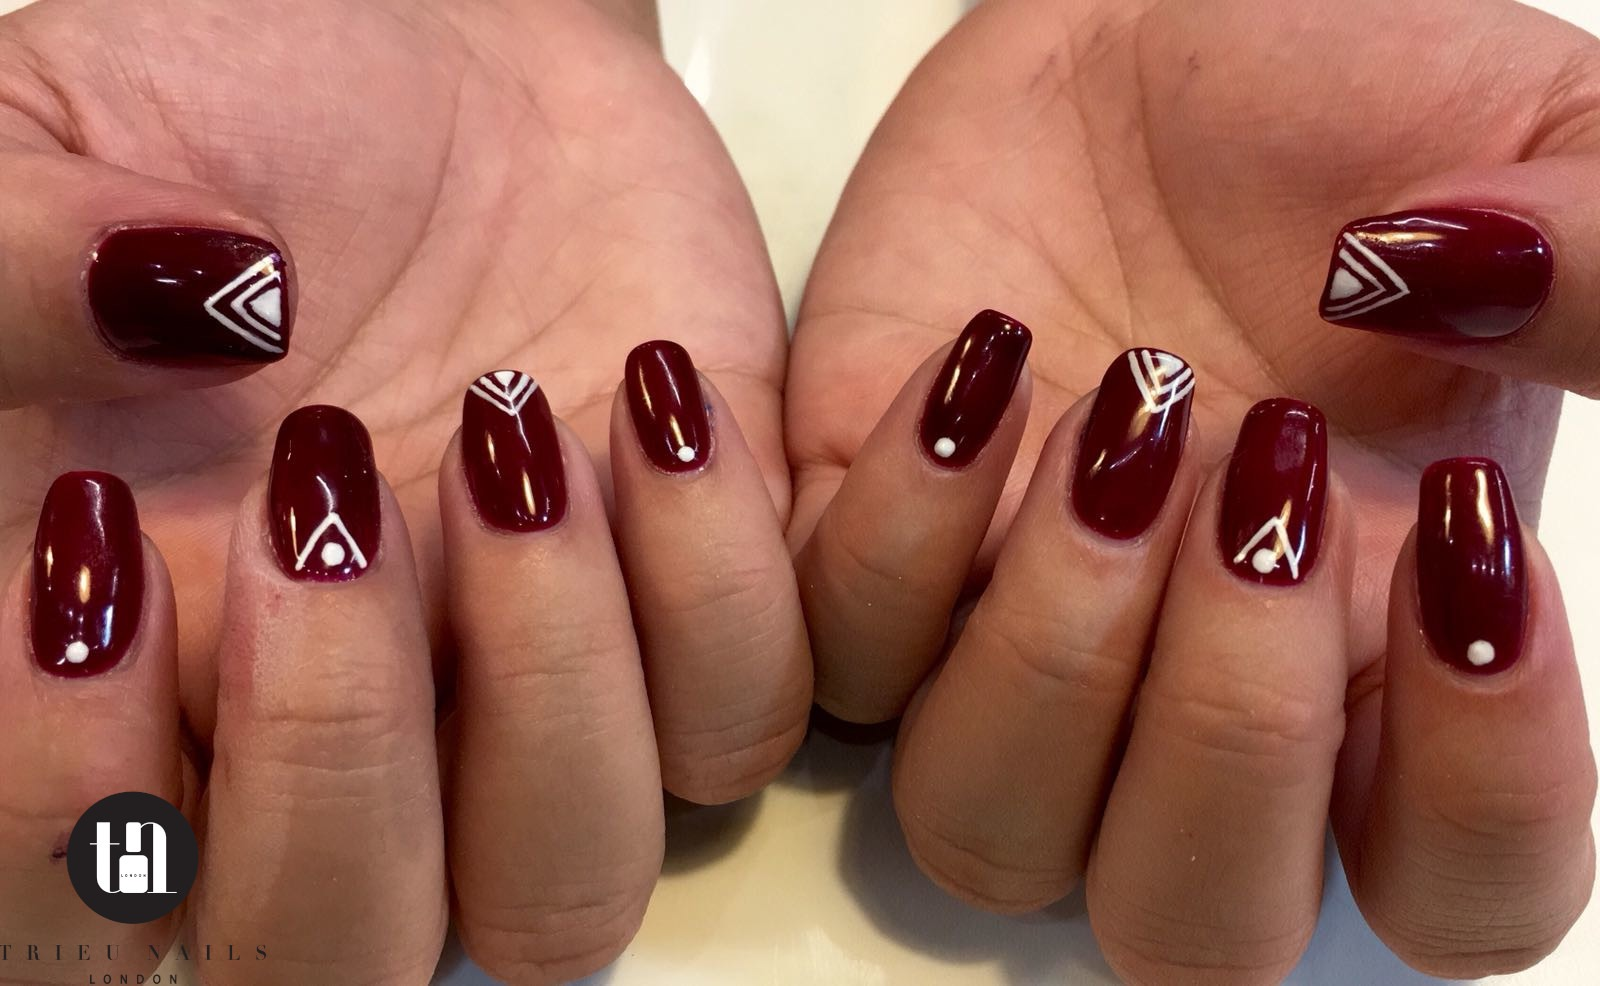 stylish shellac nails manicure